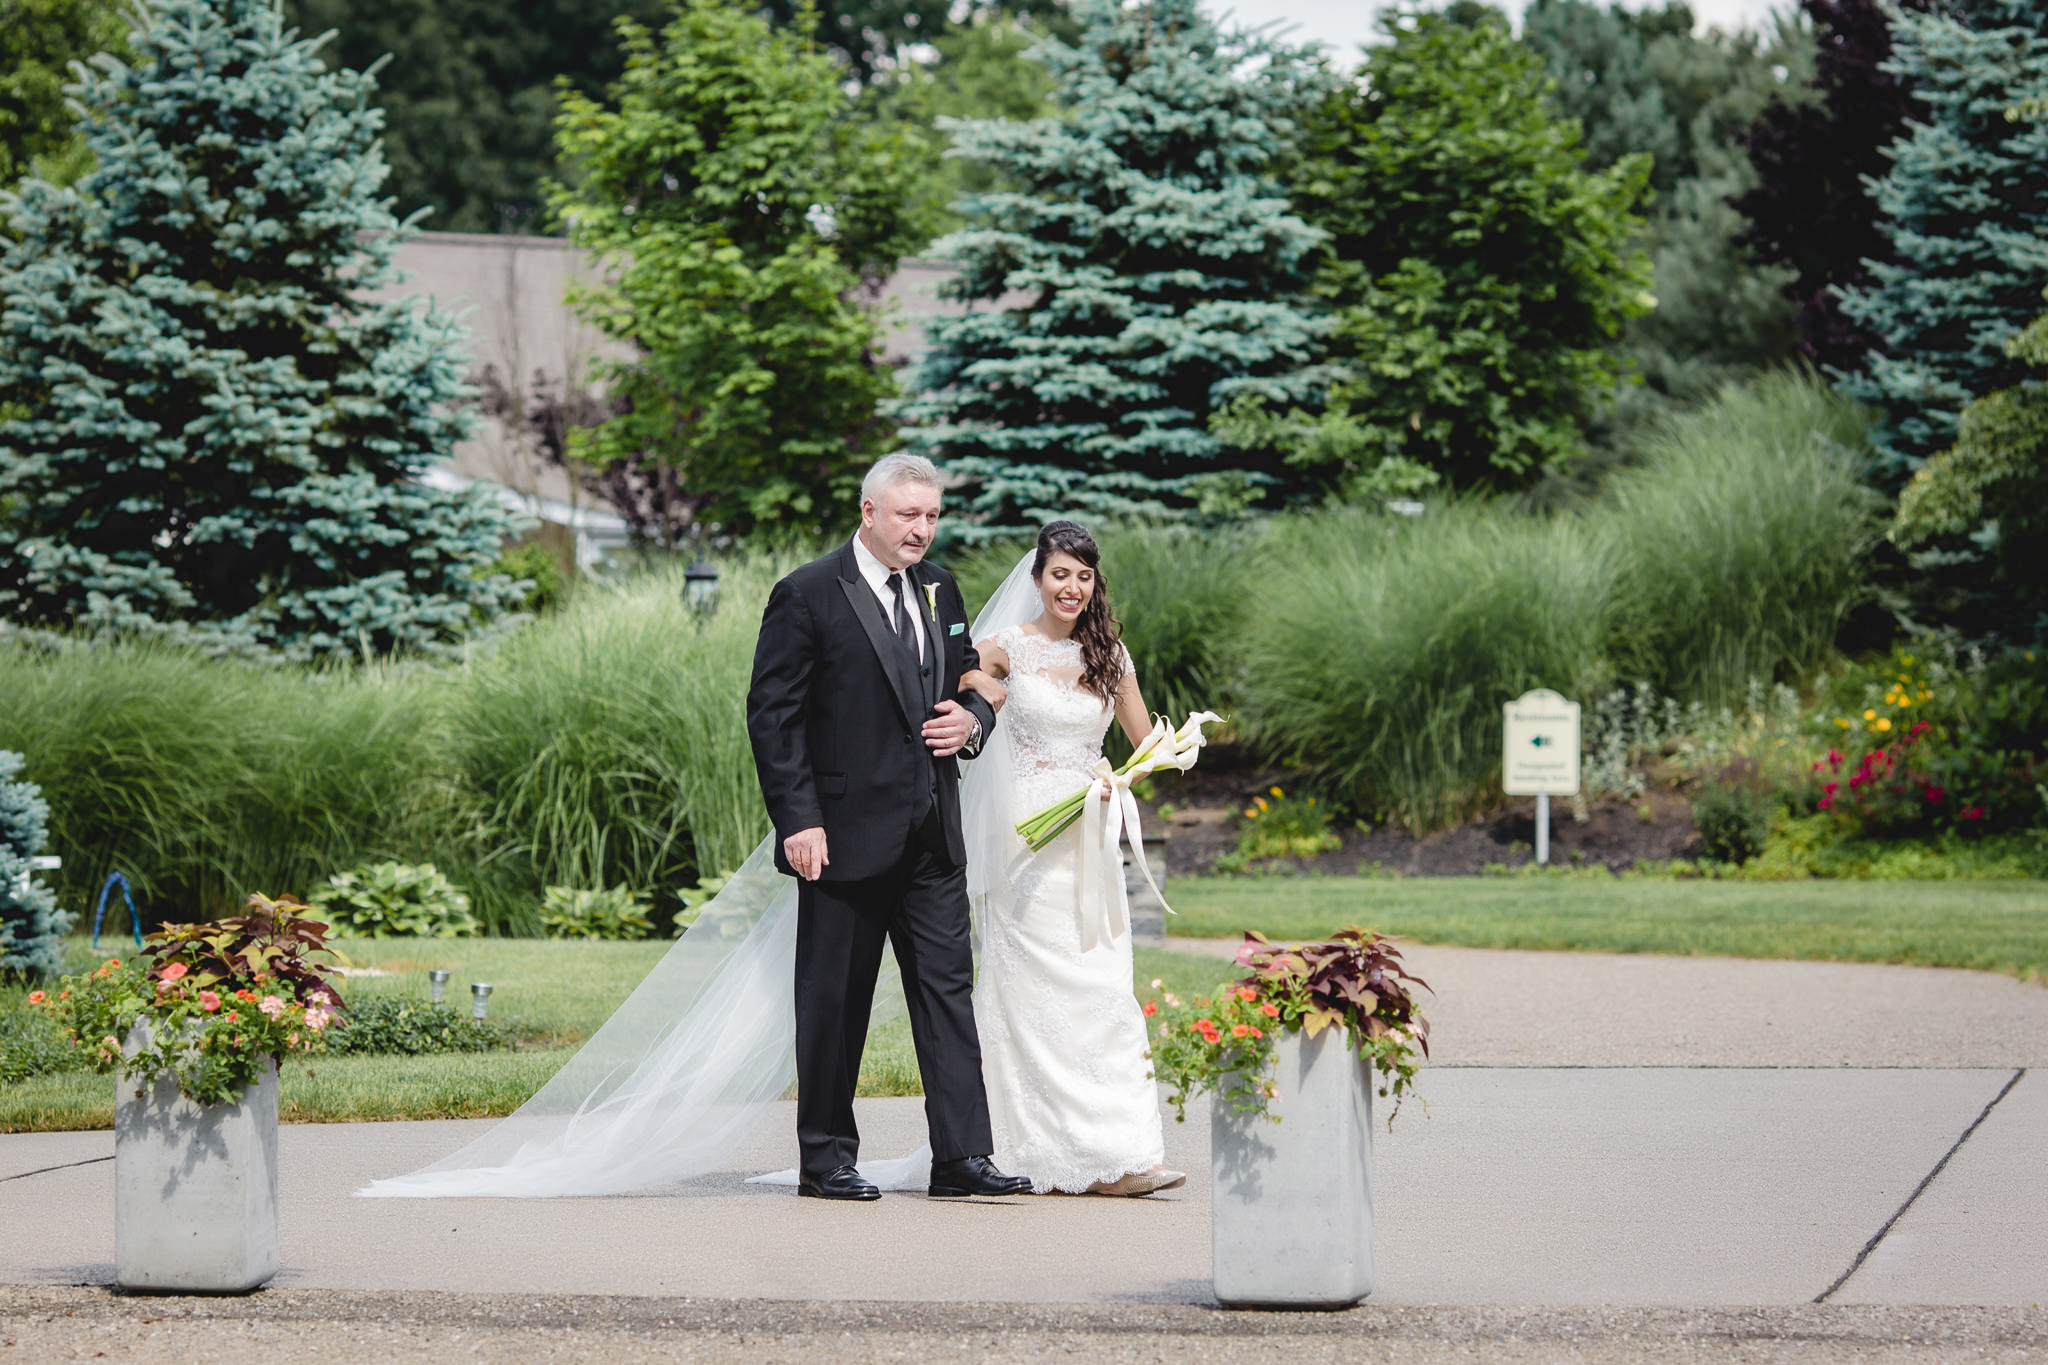 Father of the bride and his daughter at an outdoor wedding ceremony at Greystone Fields